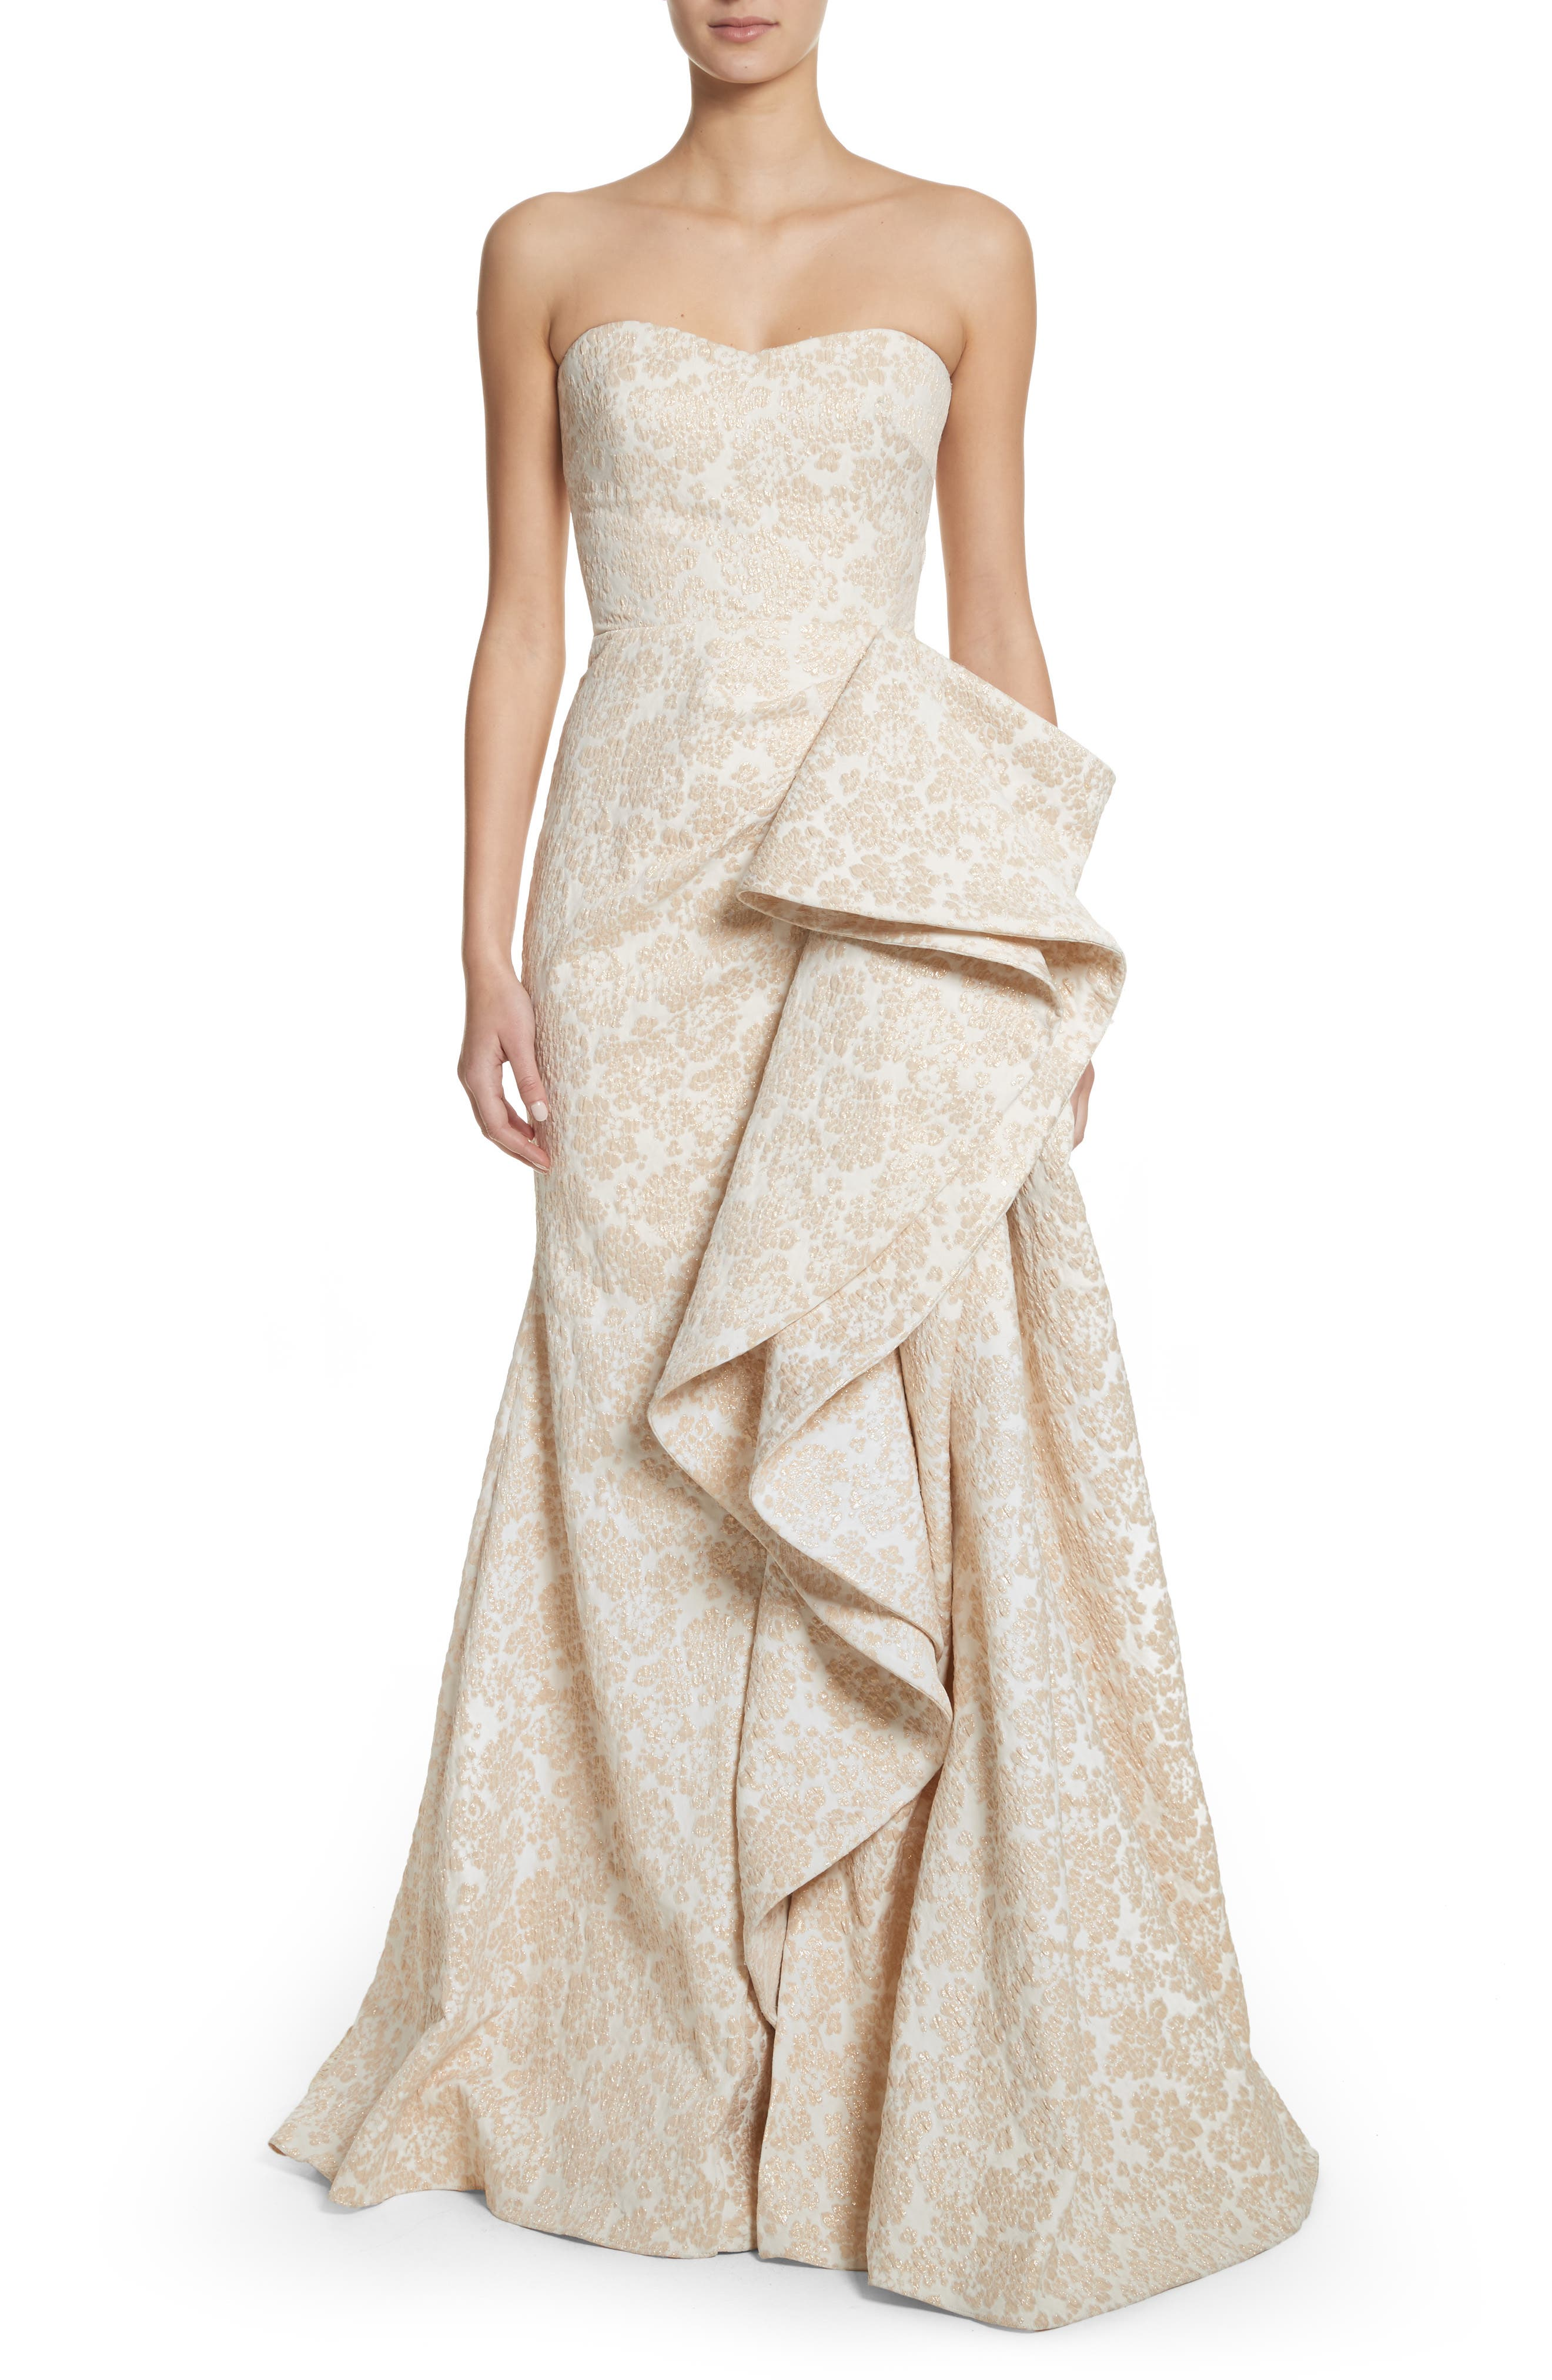 Platinum Sculptural Ruffle Gown,                             Main thumbnail 1, color,                             Ivory Gold